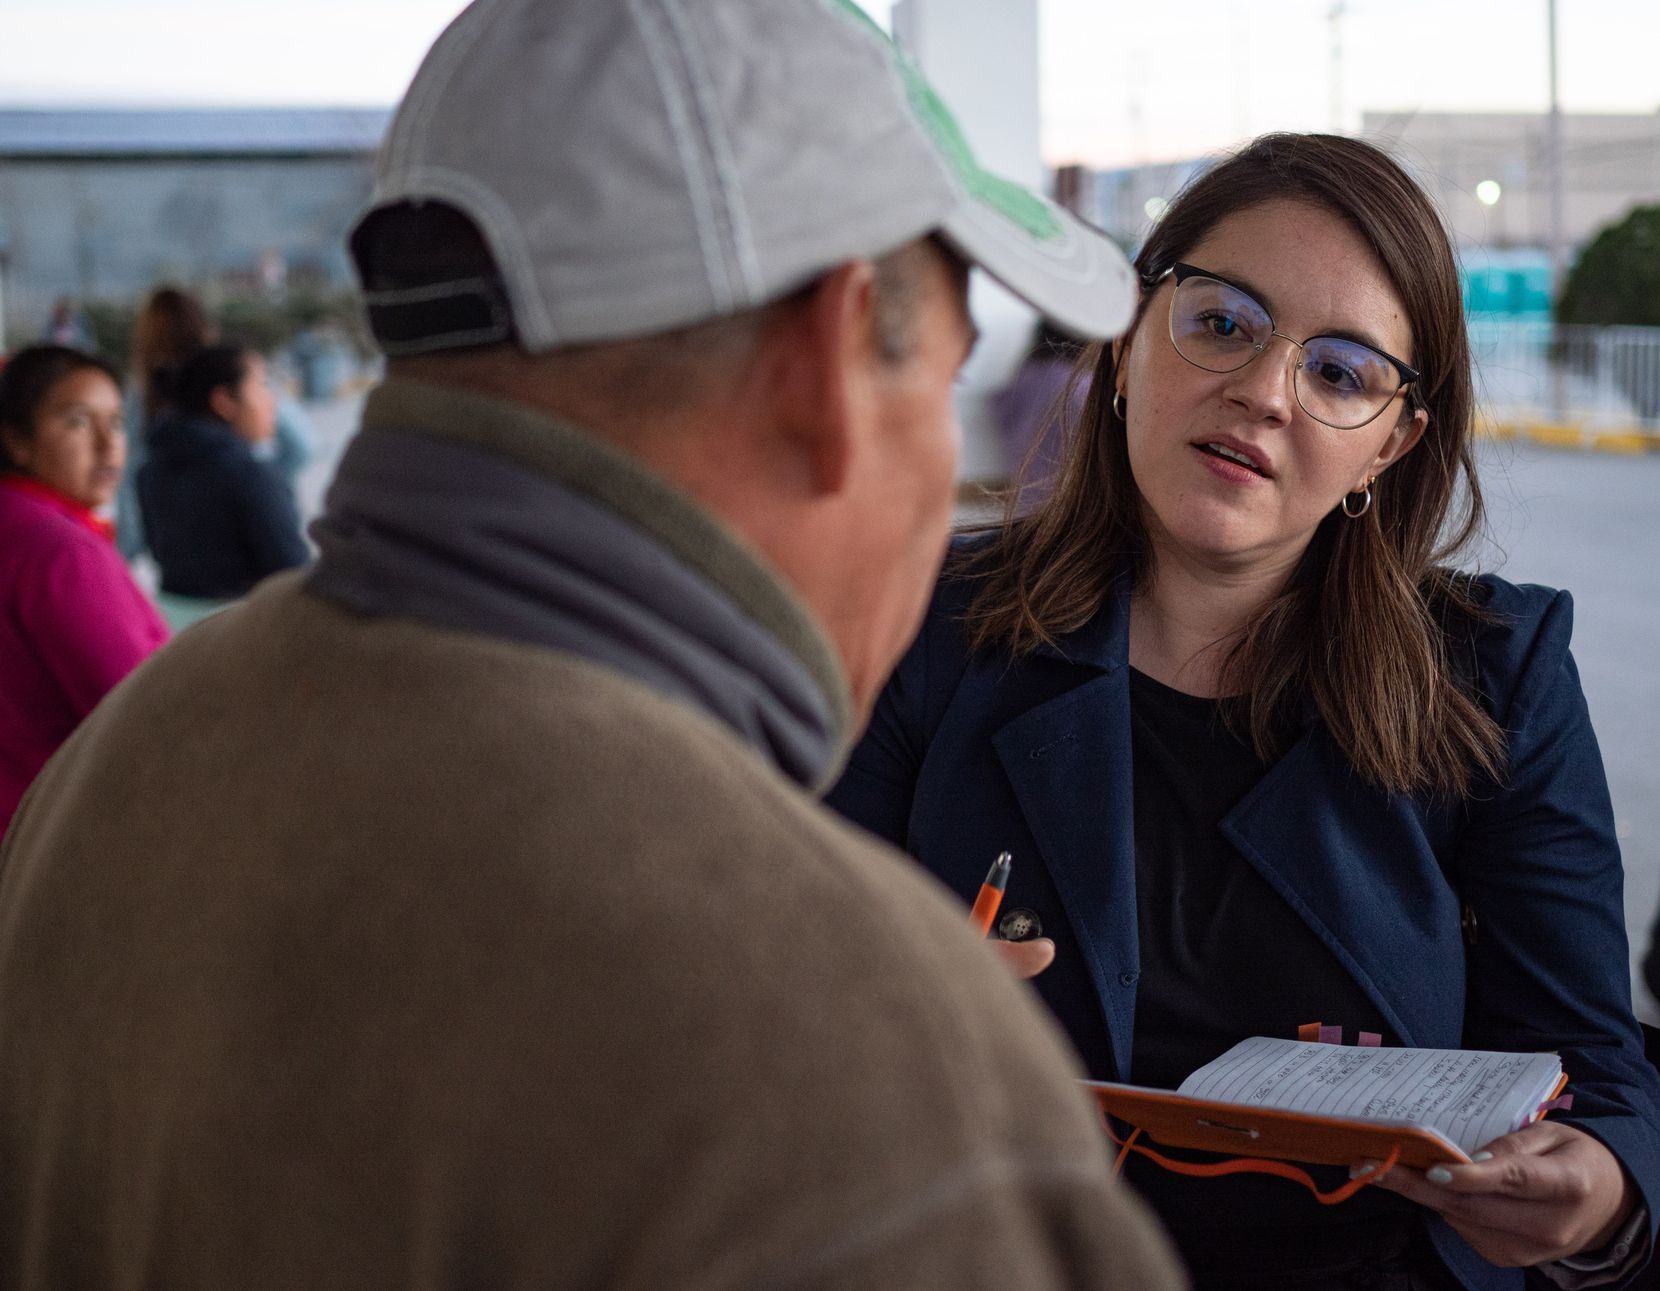 """In February, Edith Tapia of the Hope Border Institute, a policy research nonprofit, helped coordinate migrants with shelters and attorneys in Cd. Juarez, Chihuahua. This was before """"social distancing"""" became the norm in the fight against the coronavirus."""